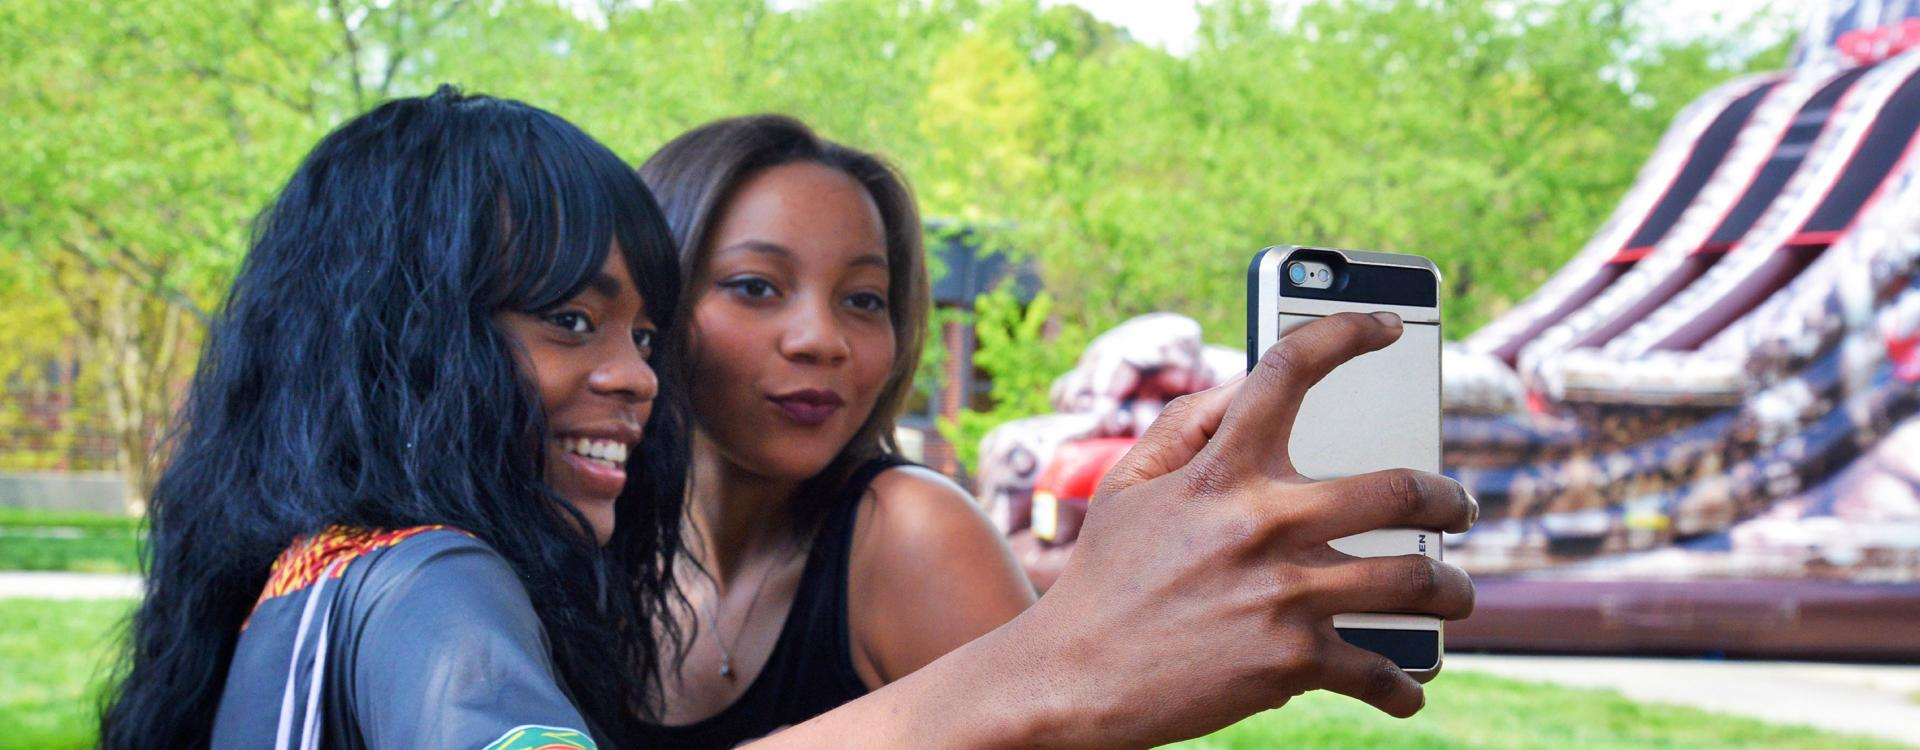 female students take selfie at student event